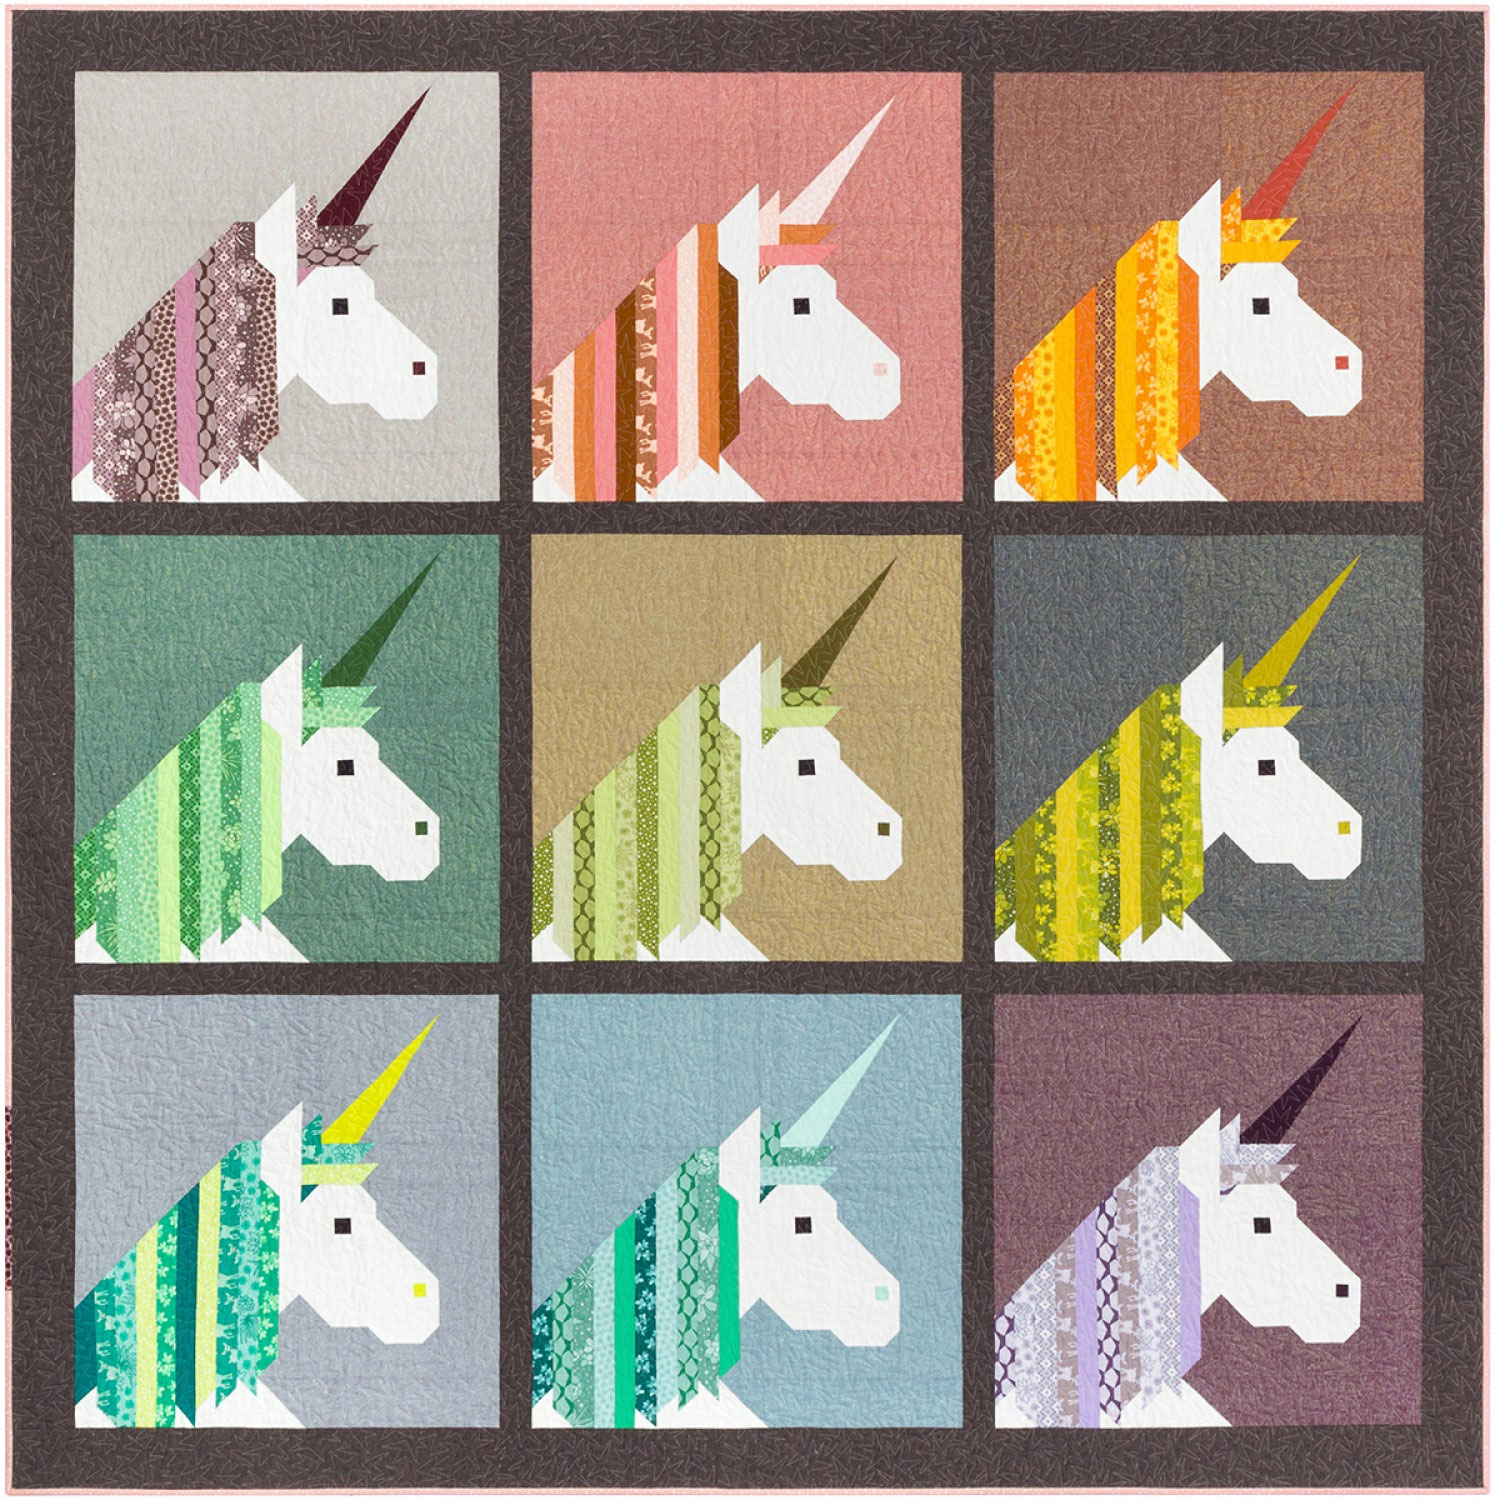 Lisa-the-Unicorn-quilt-sewing-pattern-Elizabeth-Hartman-1